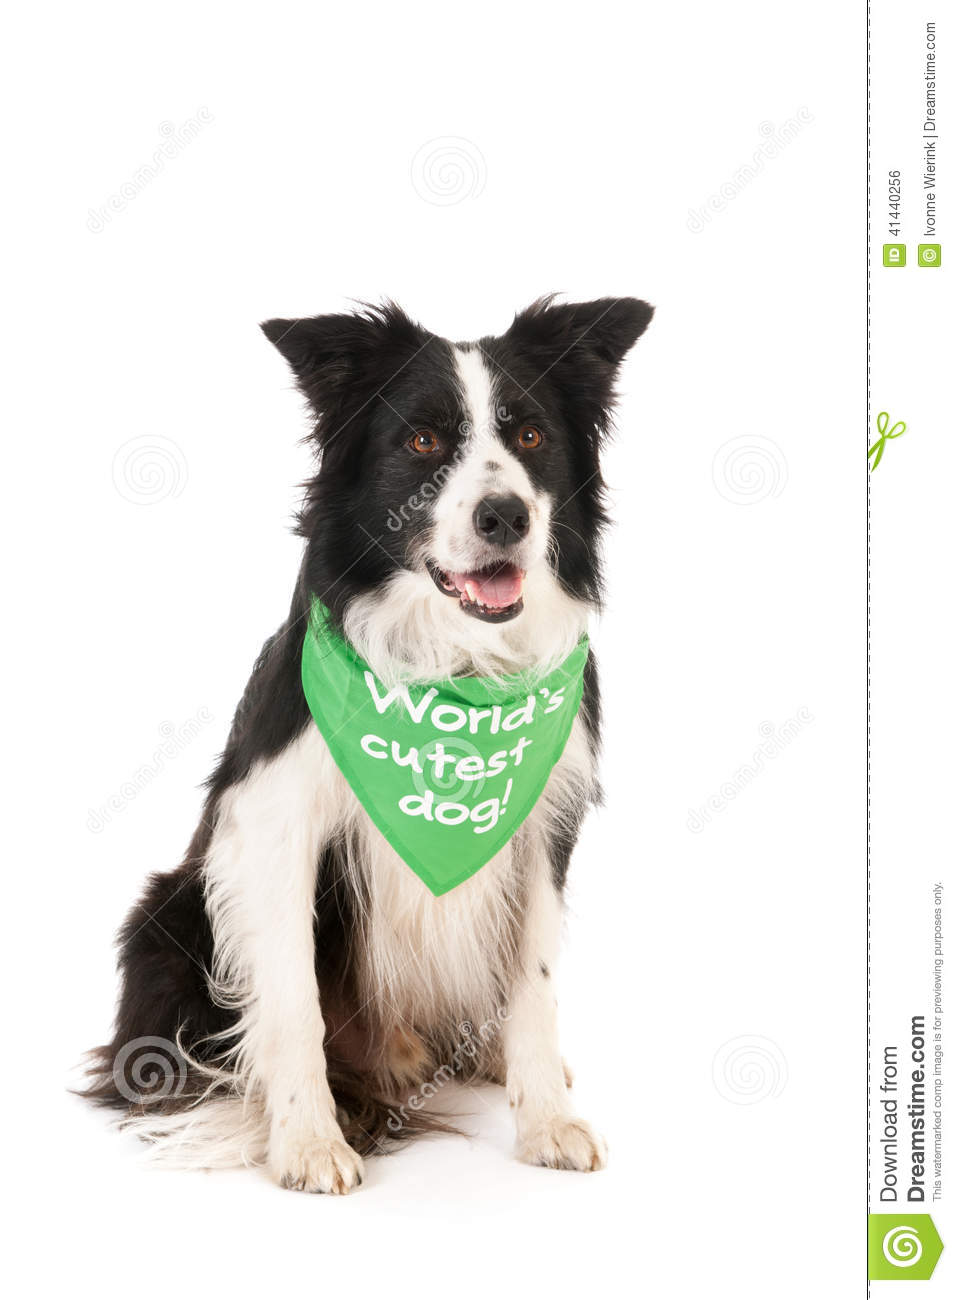 le chien le plus mignon du monde de border collie photo stock image du mignon monde 41440256. Black Bedroom Furniture Sets. Home Design Ideas